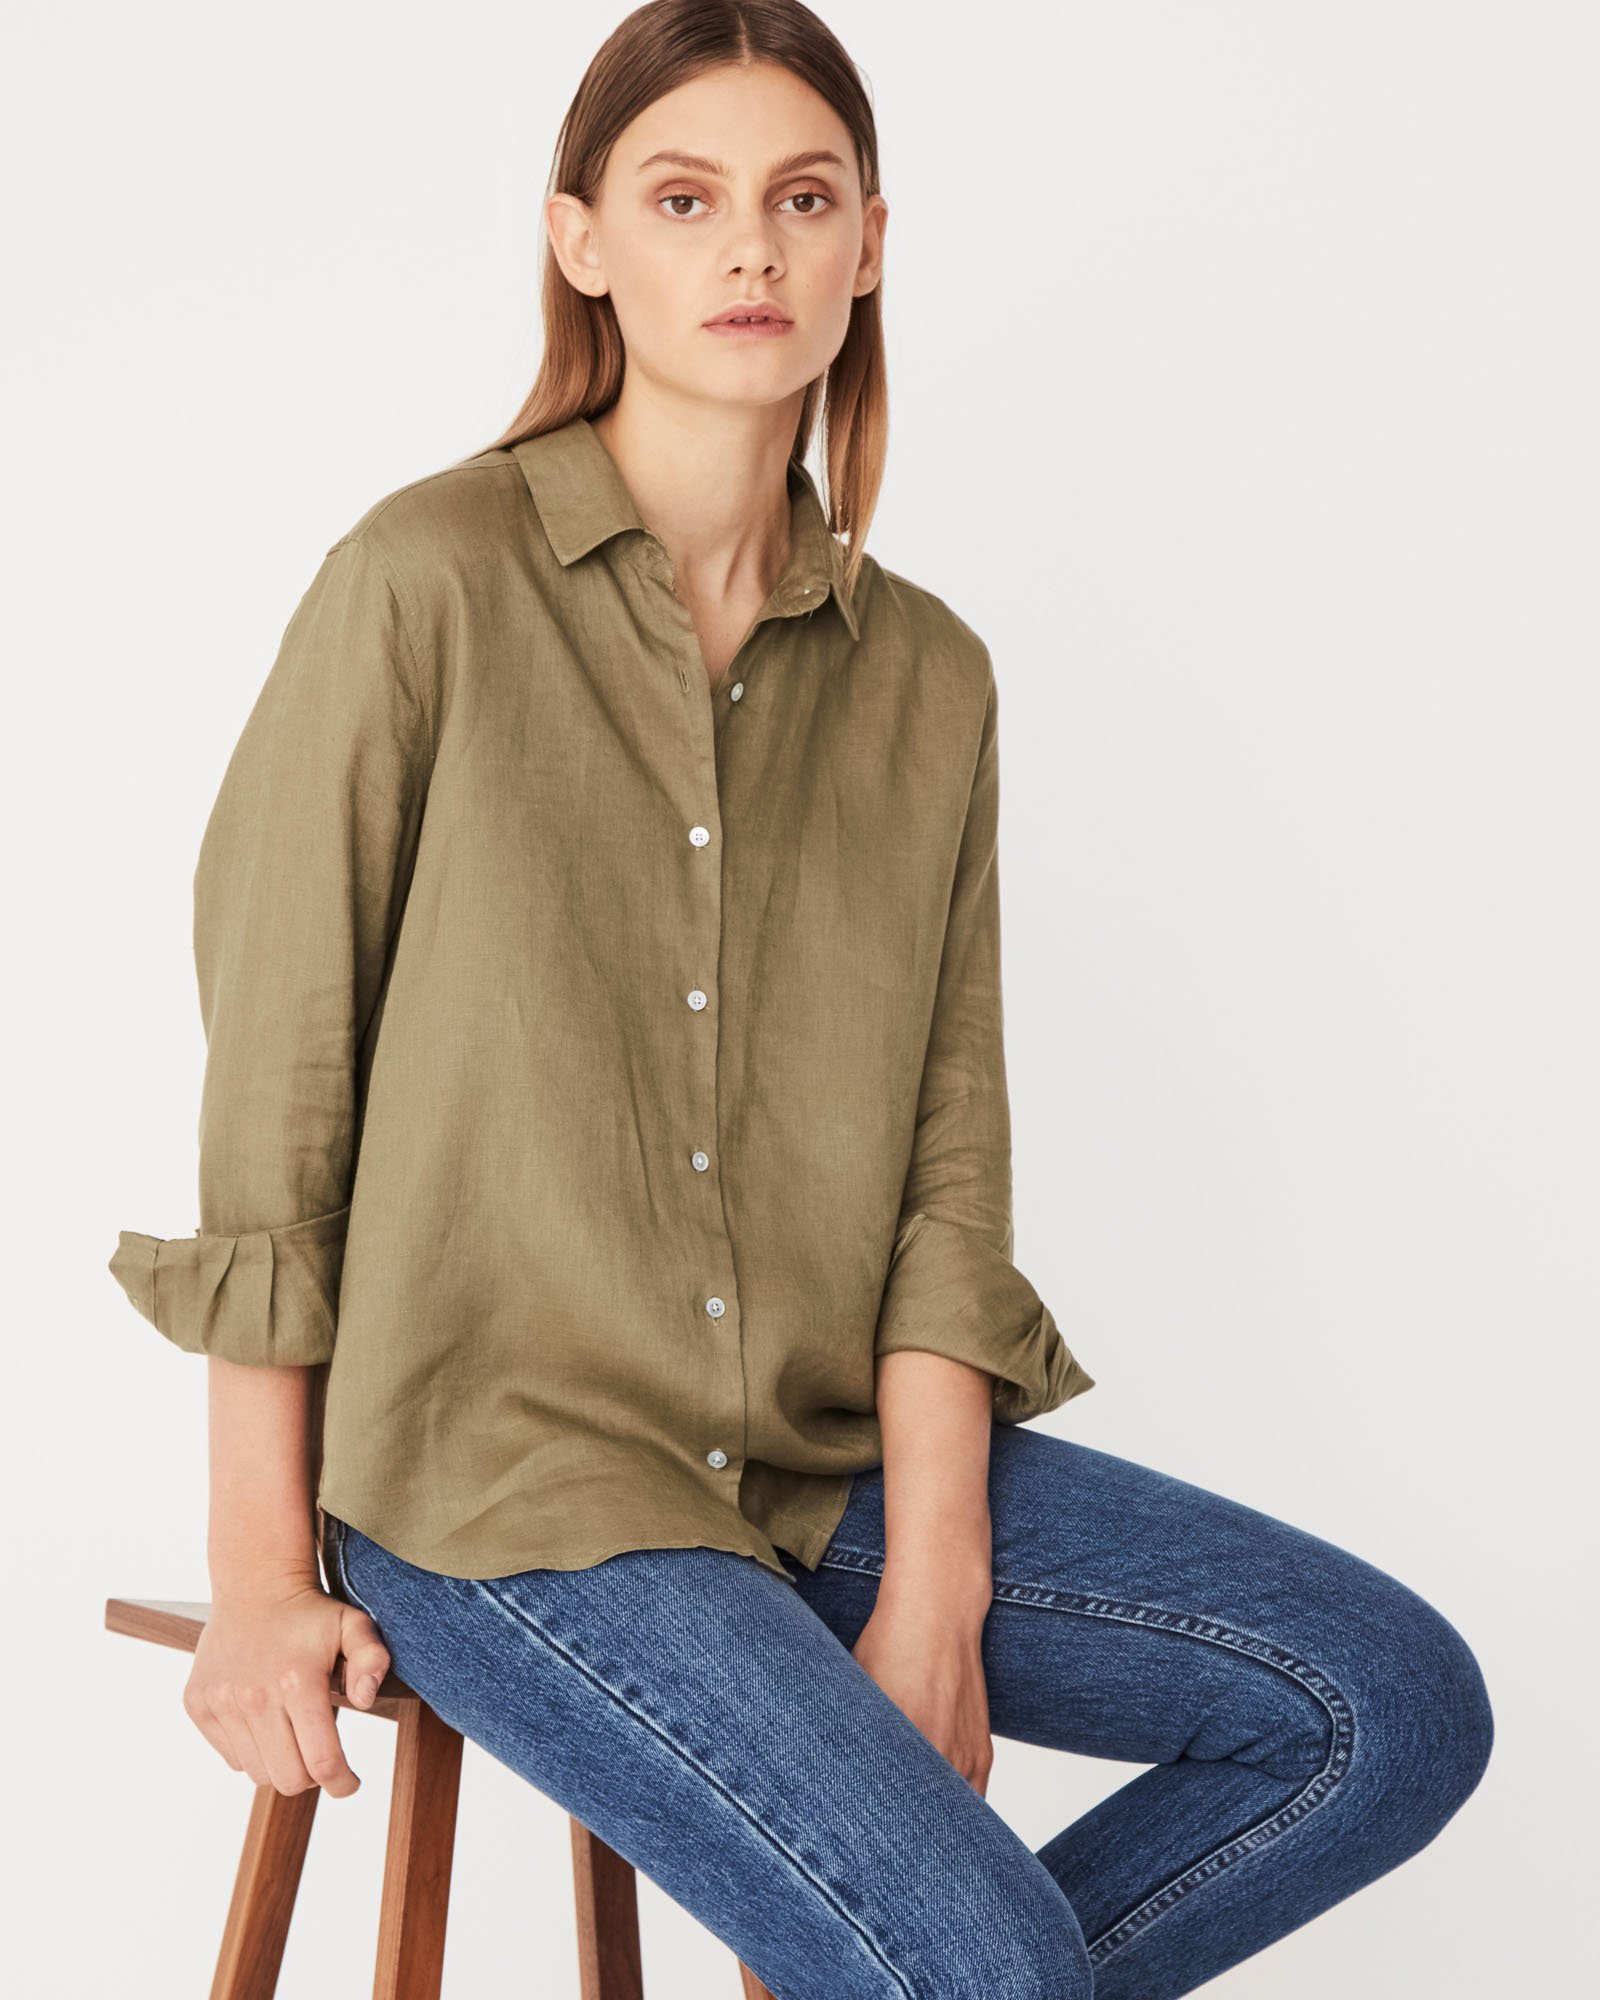 Xander Long Sleeve Linen shirt by Assembly Label at Hansen & Gretel